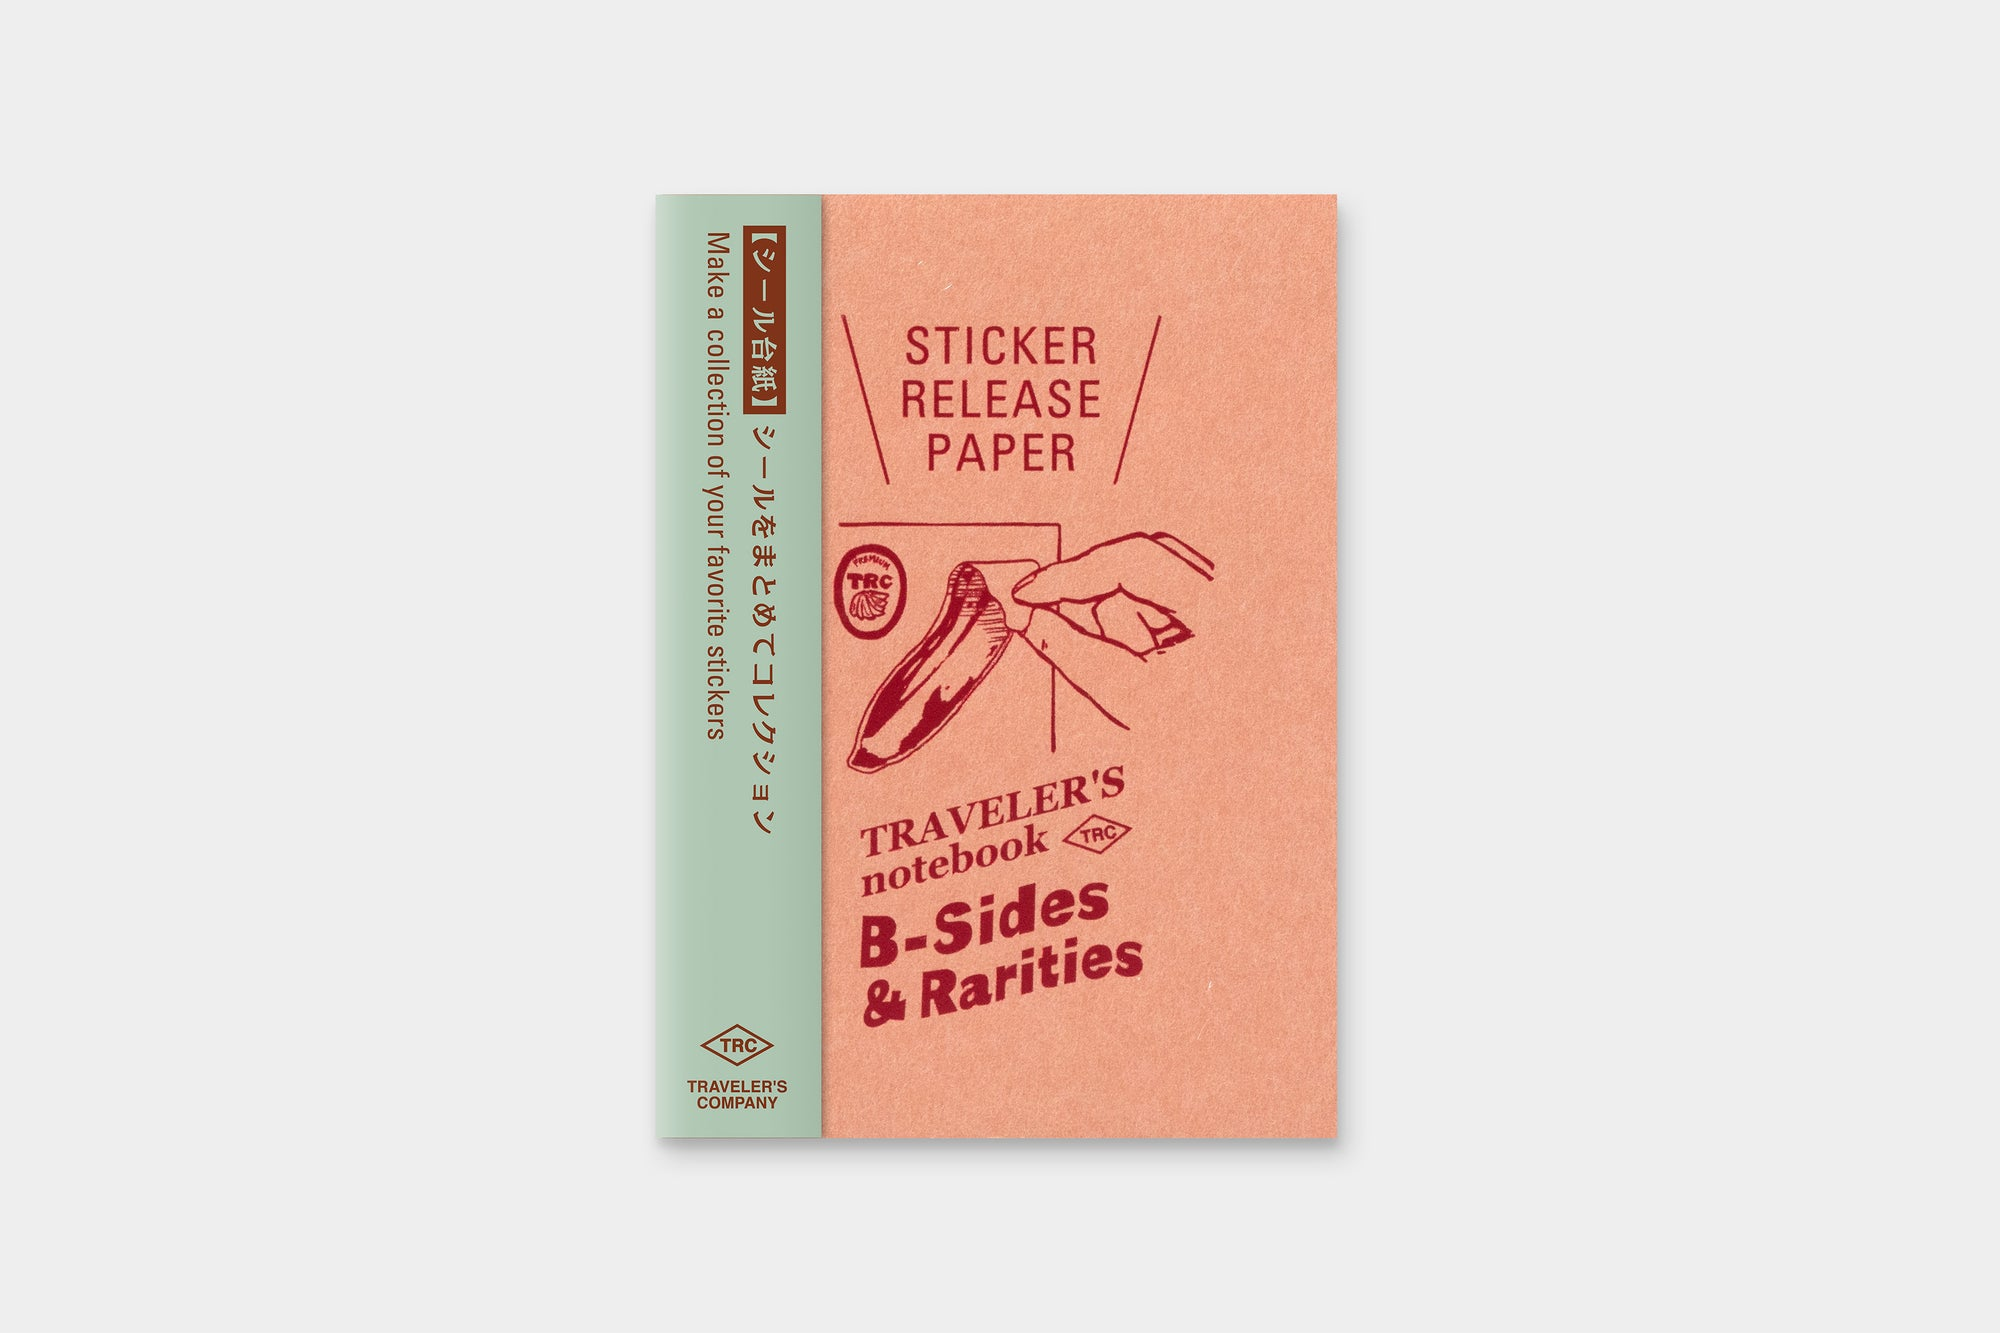 TRAVELER'S LTD Edition - Passport Size Refill Sticker Release Paper